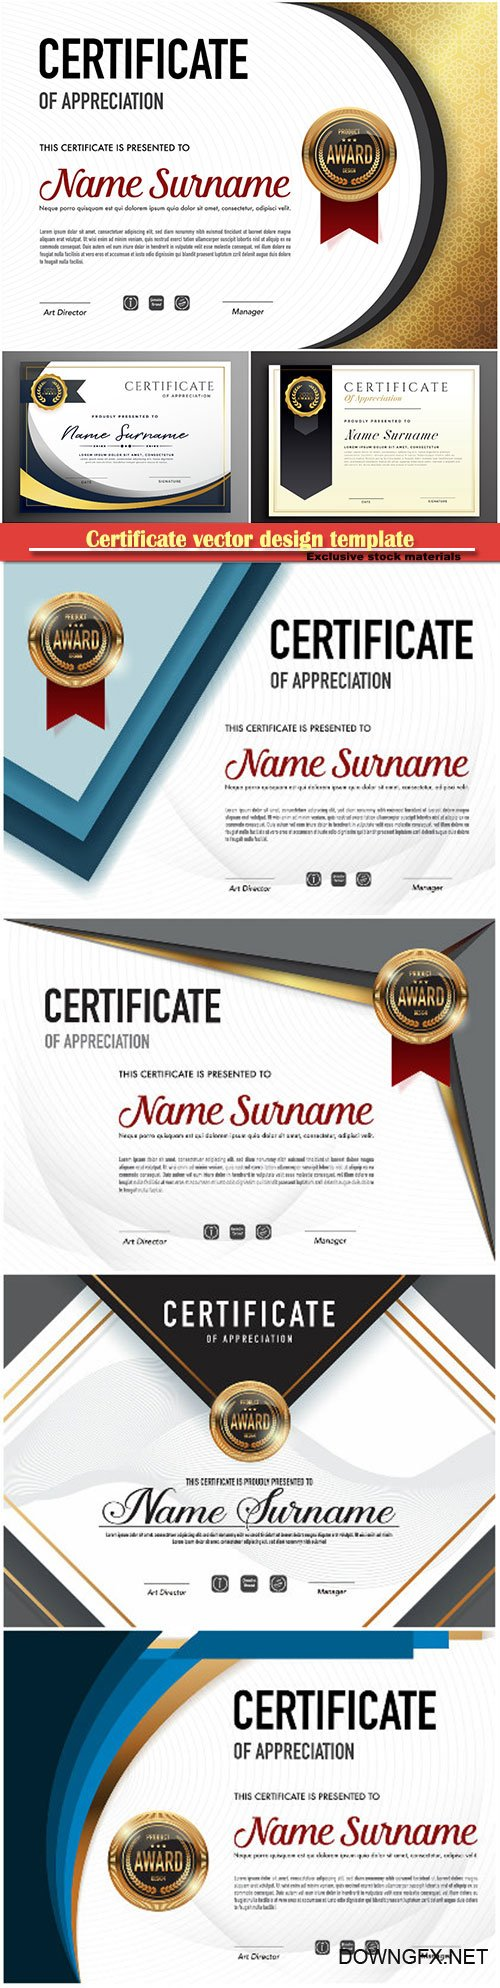 Certificate and vector diploma design template # 68